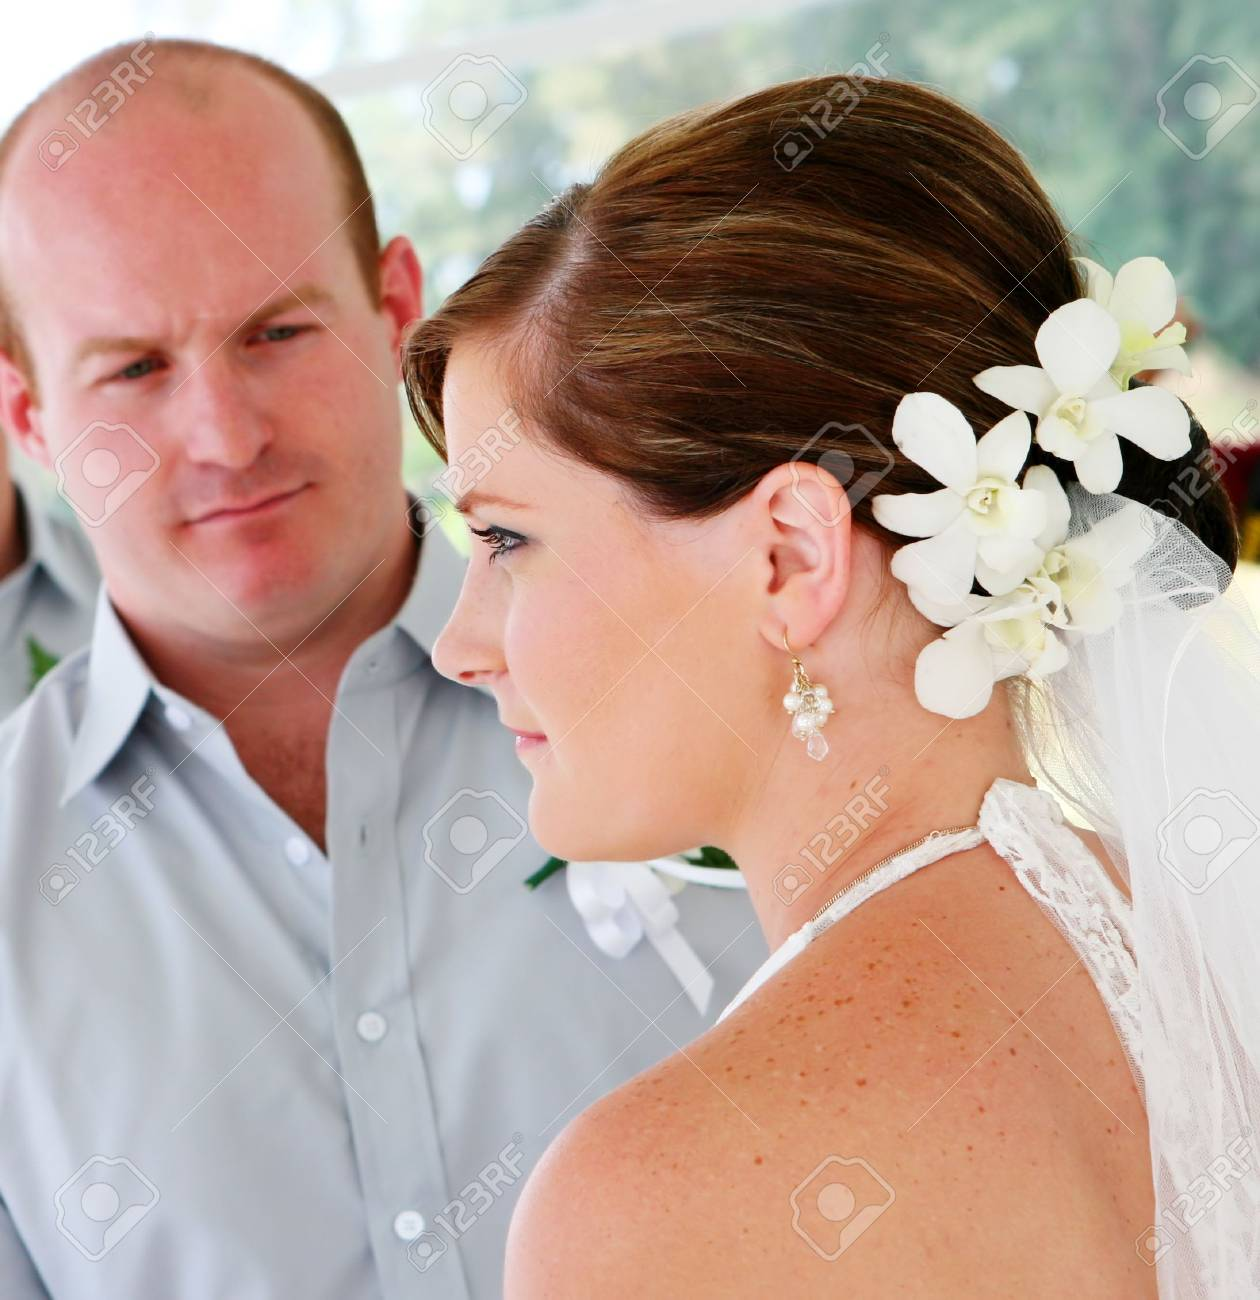 Bride and groom during their wedding day ceremony. Stock Photo - 4445832